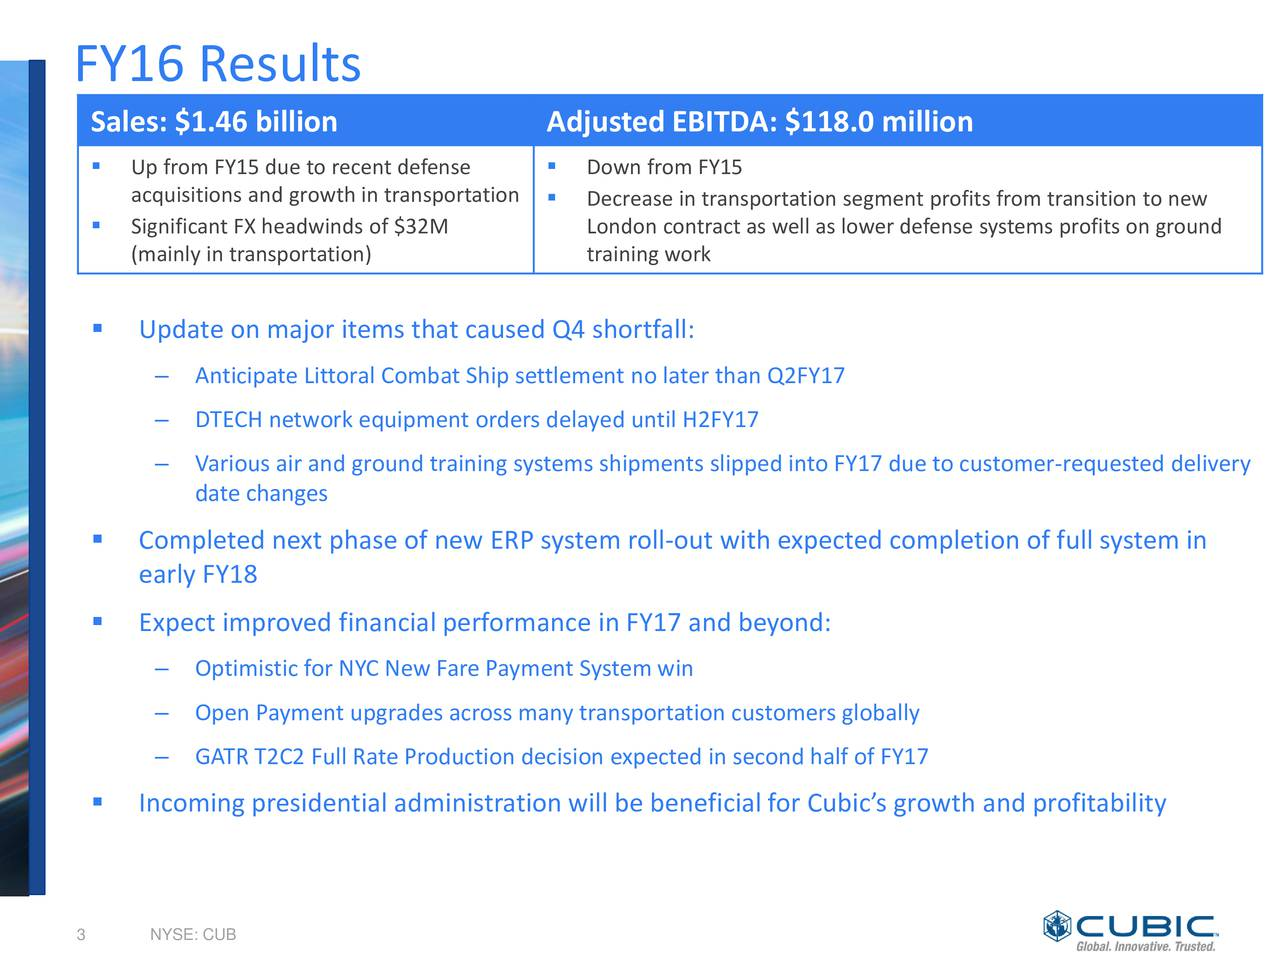 Sales: $1.46 billion Adjusted EBITDA: $118.0 million Up from FY15 due to recent defense  Down from FY15 acquisitions and growth in transportaionDecrease in transportation segment profits from transition to new Significant FX headwinds of $32M London contract as well as lower defense systems profits on ground (mainly in transportation) training work Update on major items that caused Q4 shortfall: Anticipate Littoral Combat Ship settlement no later than Q2FY17 DTECH network equipment orders delayed until H2FY17 Various air and ground training systems shipments slipped into FY17 due to customer-requested delivery date changes Completed next phase of new ERP system roll-out with expected completion of full system in early FY18 Expect improved financial performance in FY17 and beyond: Optimistic for NYC New Fare Payment System win Open Payment upgrades across many transportation customers globally GATR T2C2 Full Rate Production decision expected in second half of FY17 Incoming presidential administration will be beneficial for Cubics growth and profitability 3 NYSE: CUB